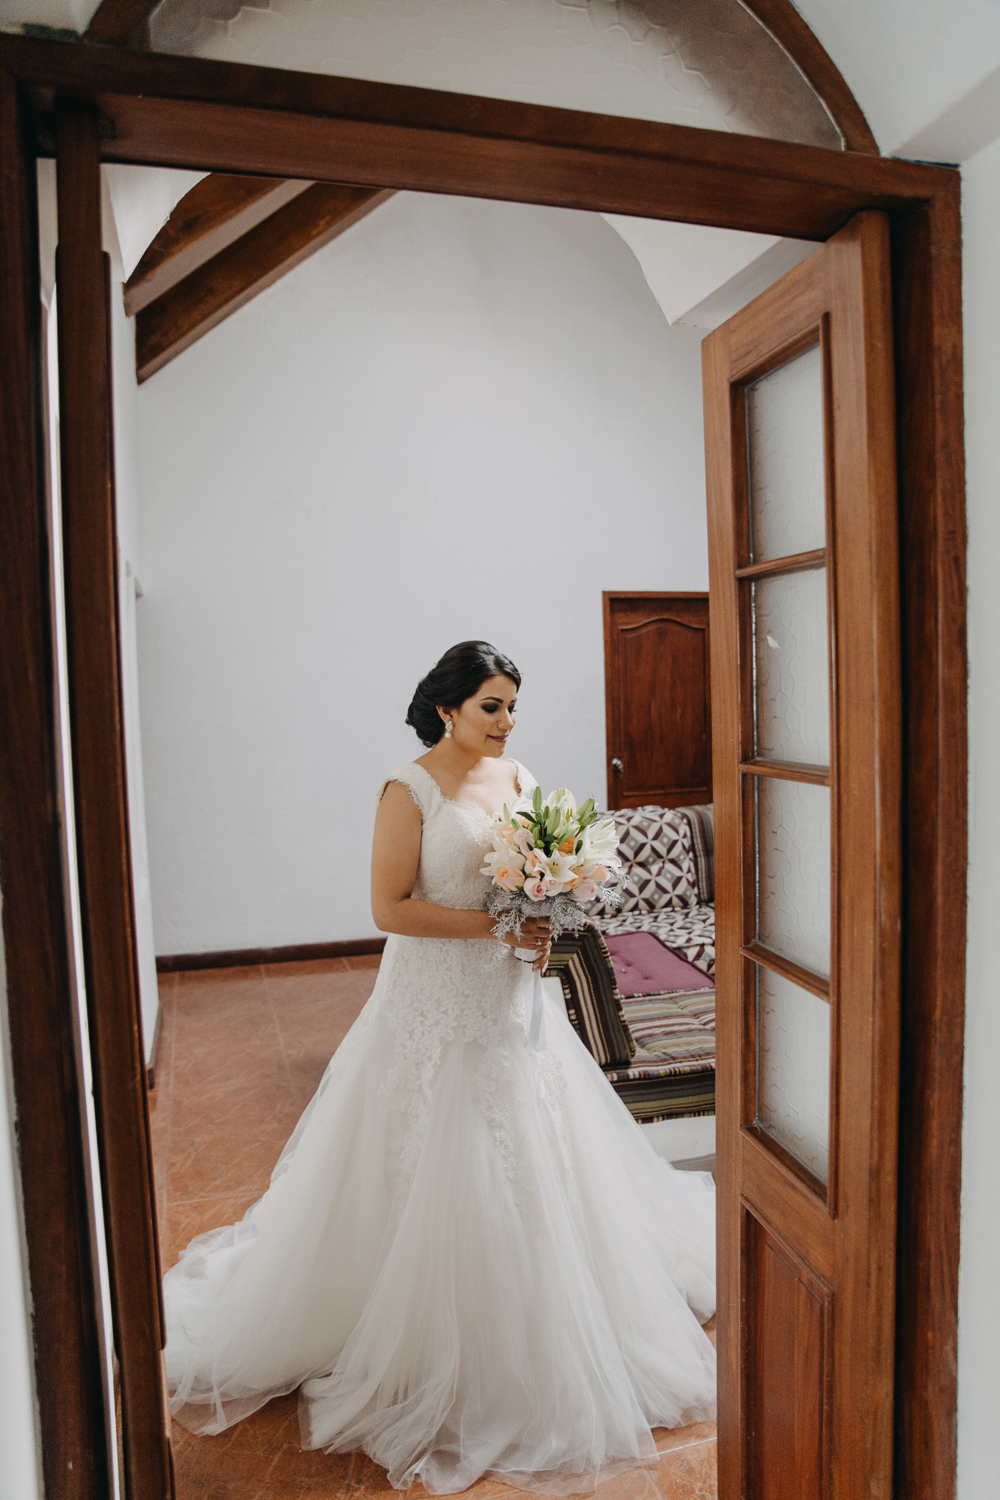 Michelle-Agurto-Fotografia-Bodas-Ecuador-Destination-Wedding-Photographer-Pamela-Ricardo-54.JPG